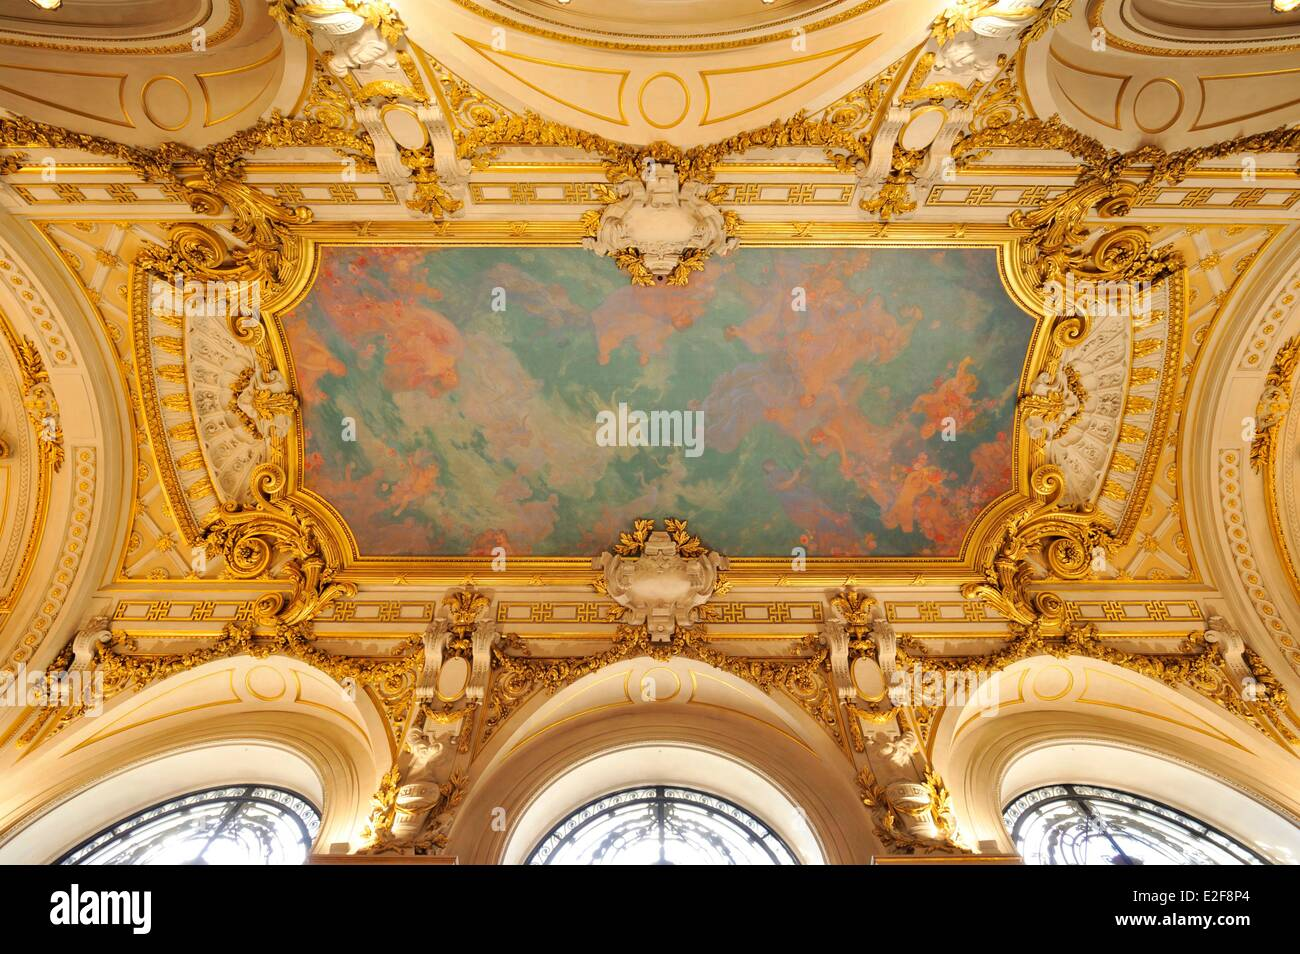 France, Nord, Lille, Lille Opera, the home, ceiling decorated with a painting - Stock Image